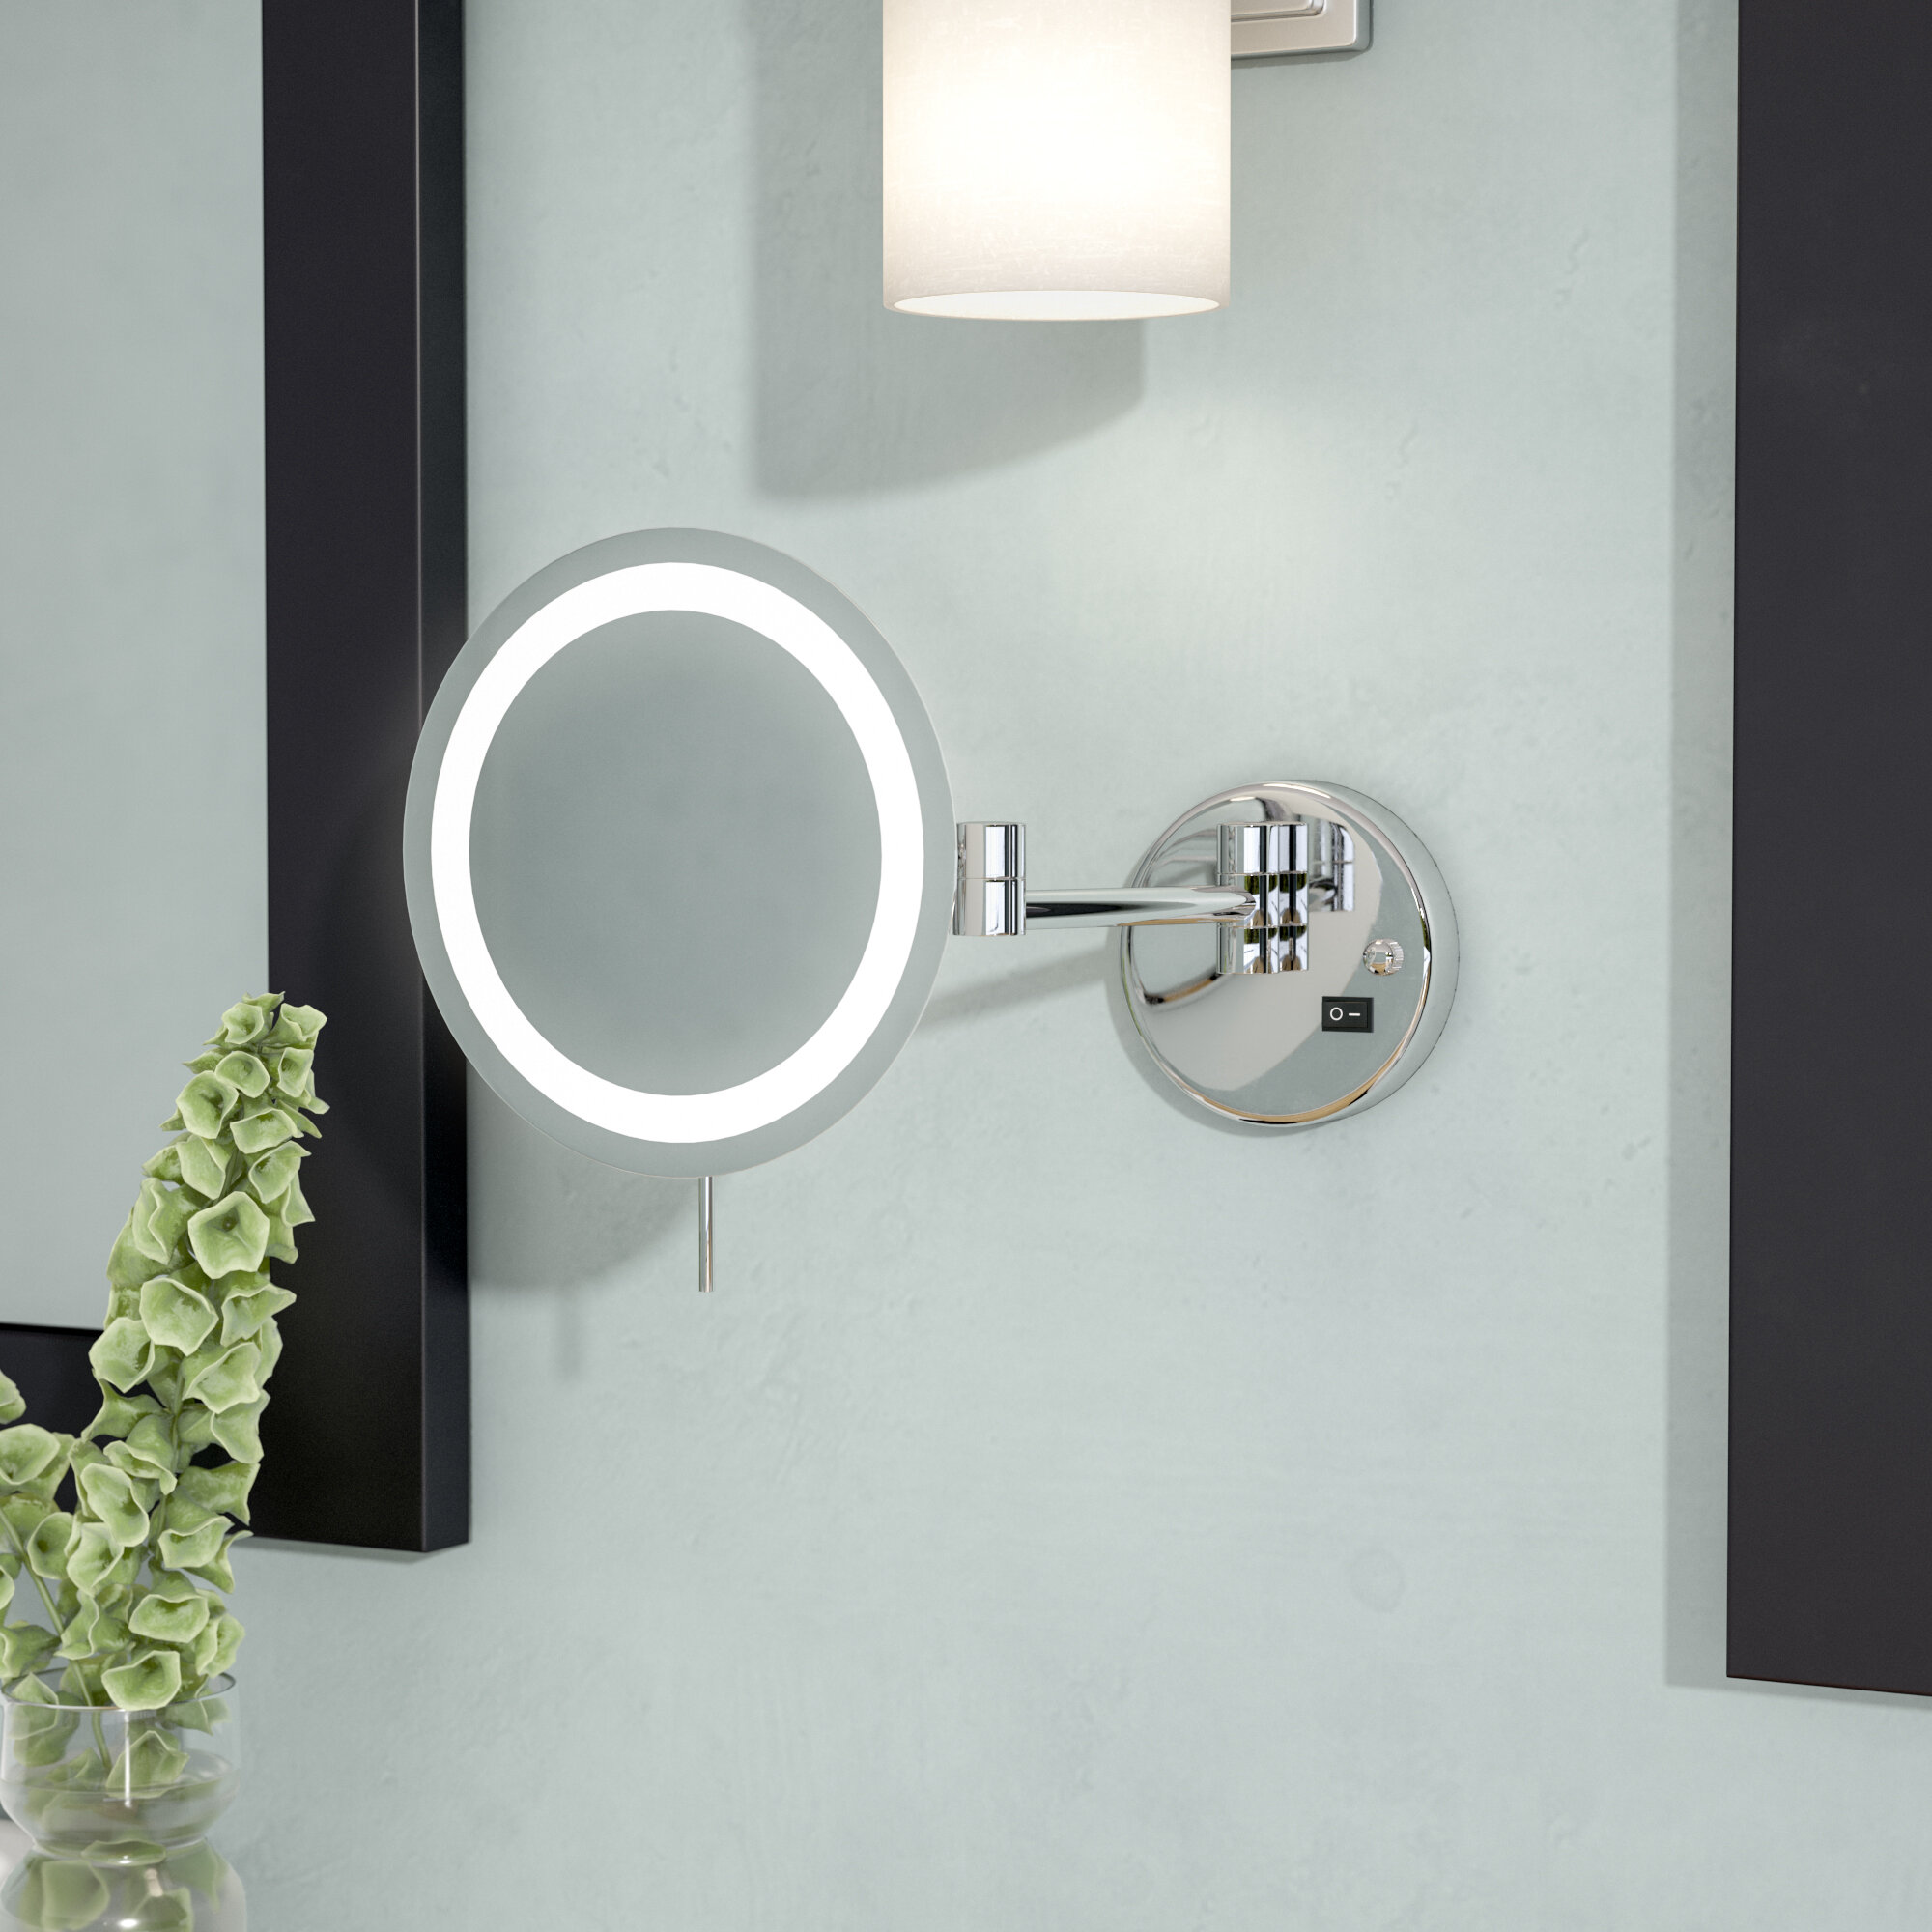 Symple Stuff LED 8x Magnifying Wall Mount Makeup Mirror Reviews